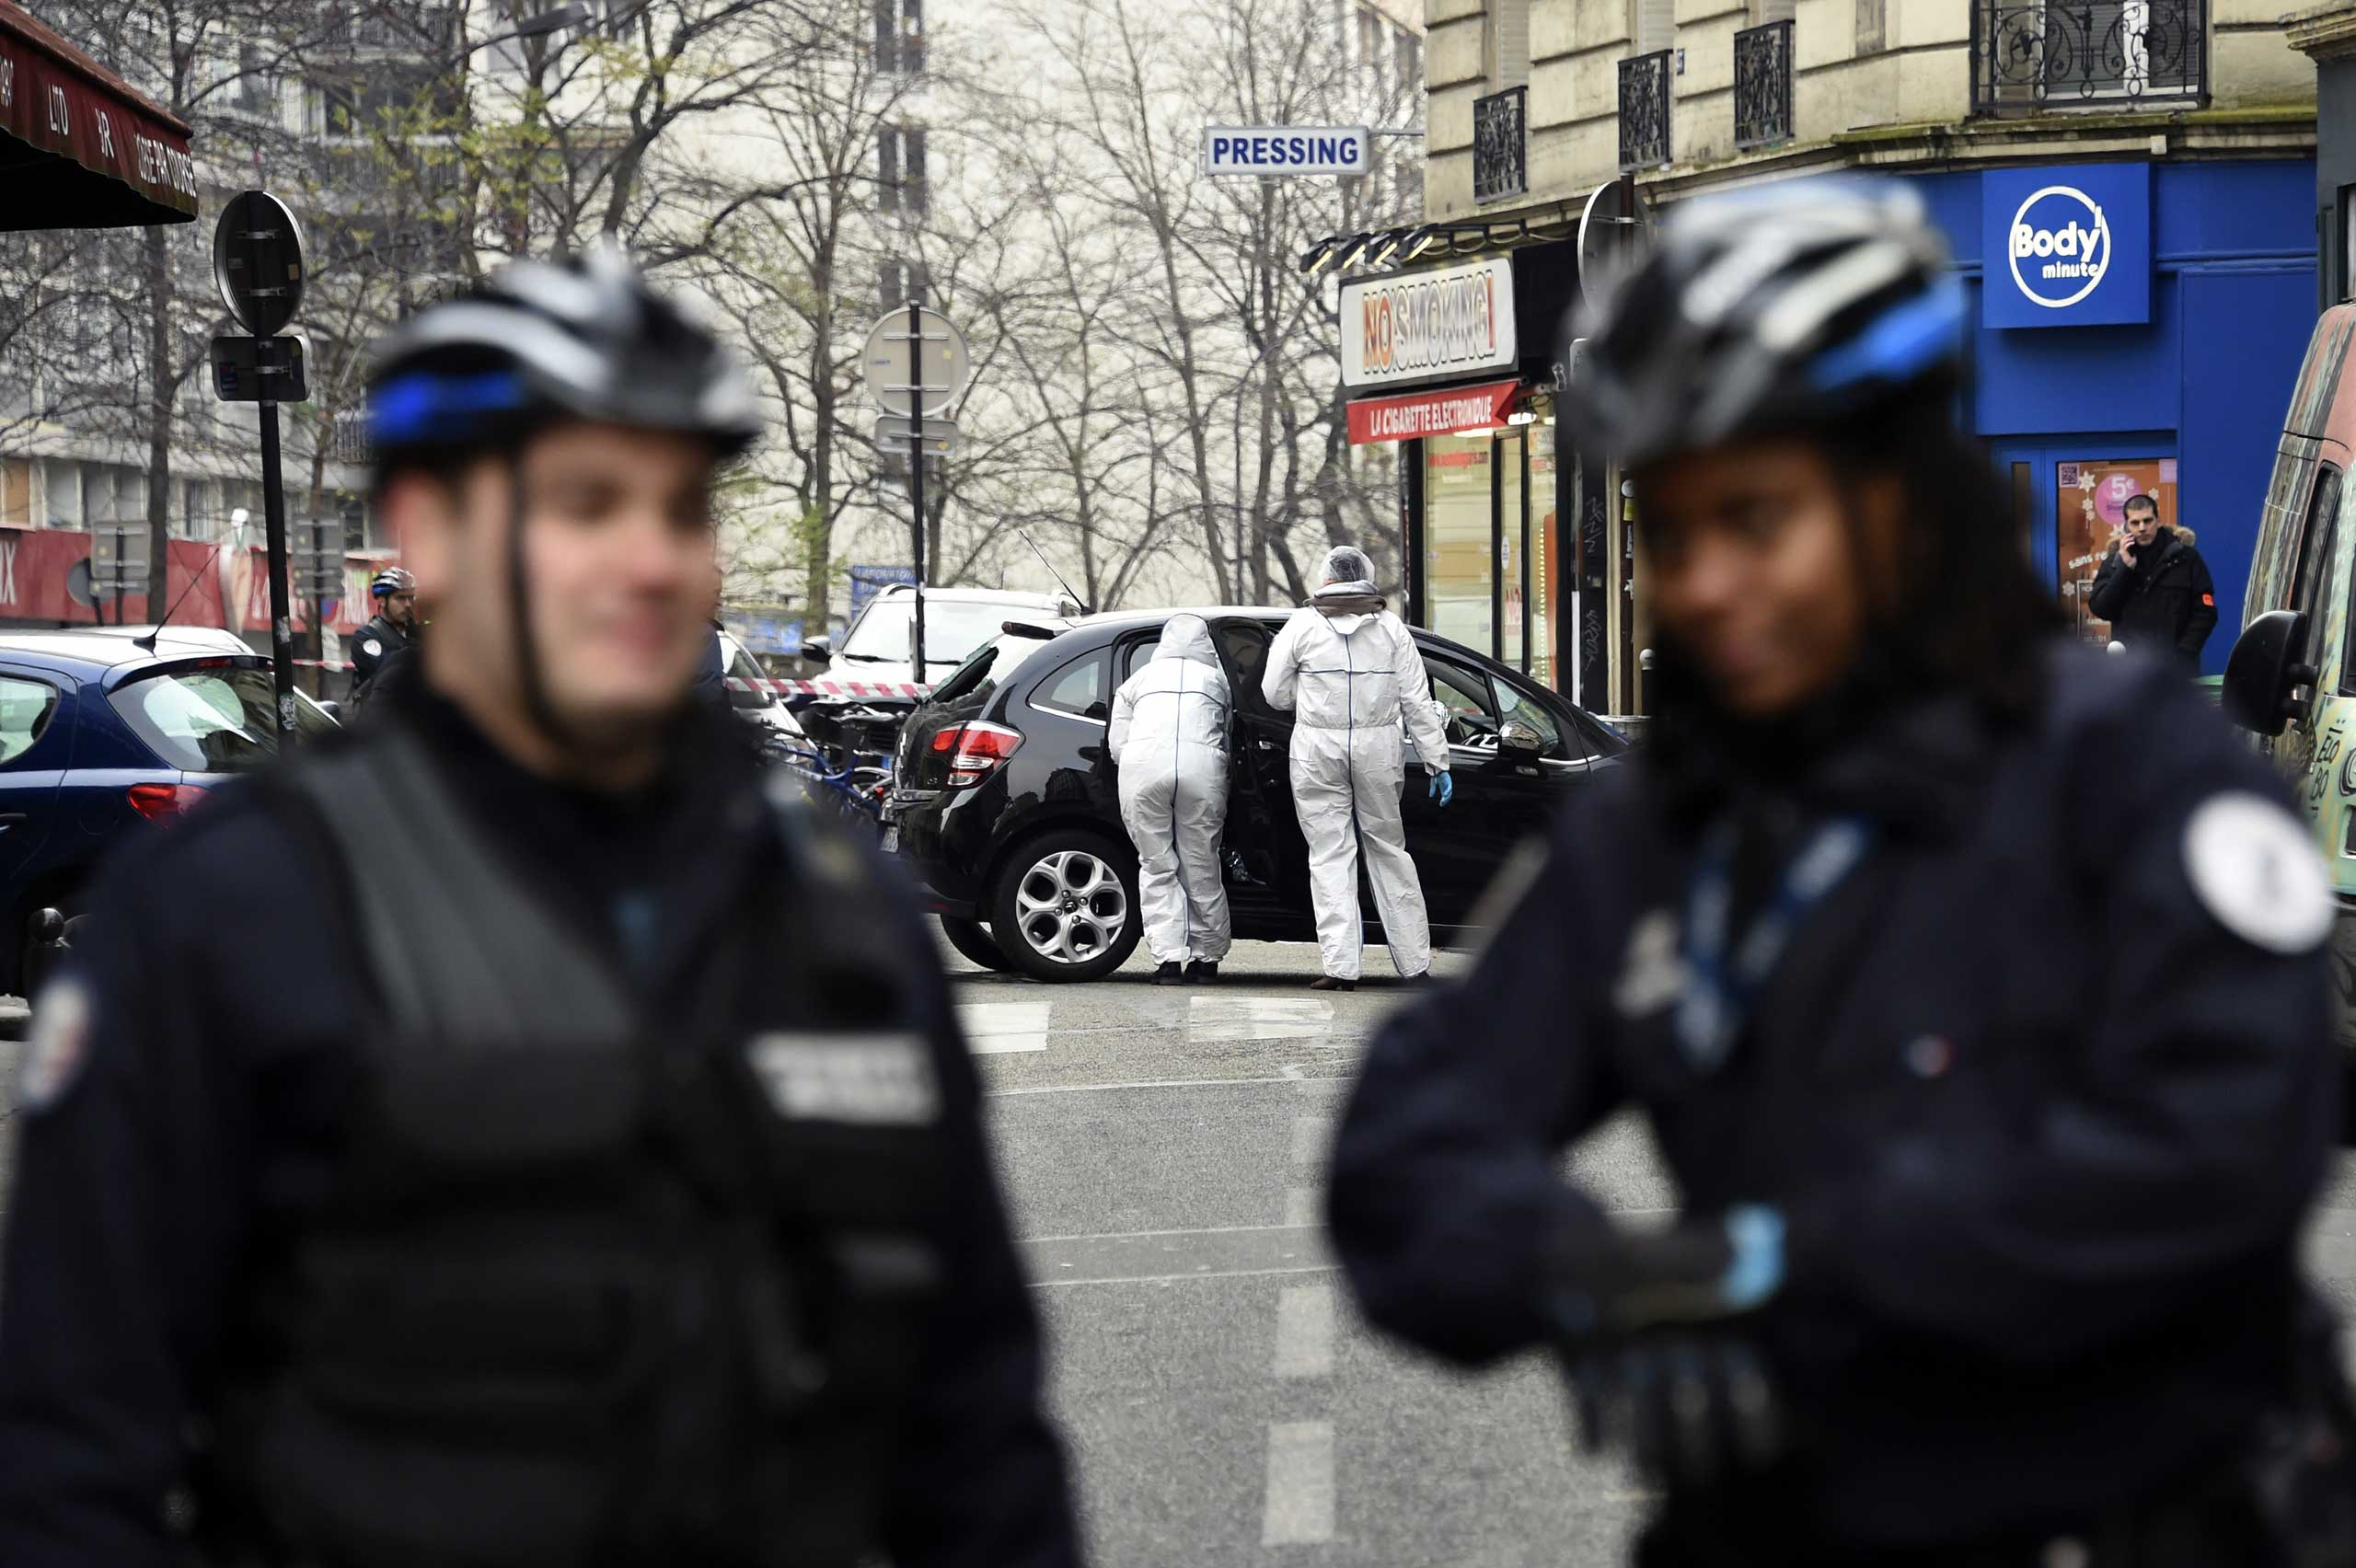 French police officers and forensic experts examine the car used by armed gunmen who stormed the Paris offices of satirical newspaper Charlie Hebdo on Jan. 7, 2015 in Paris.